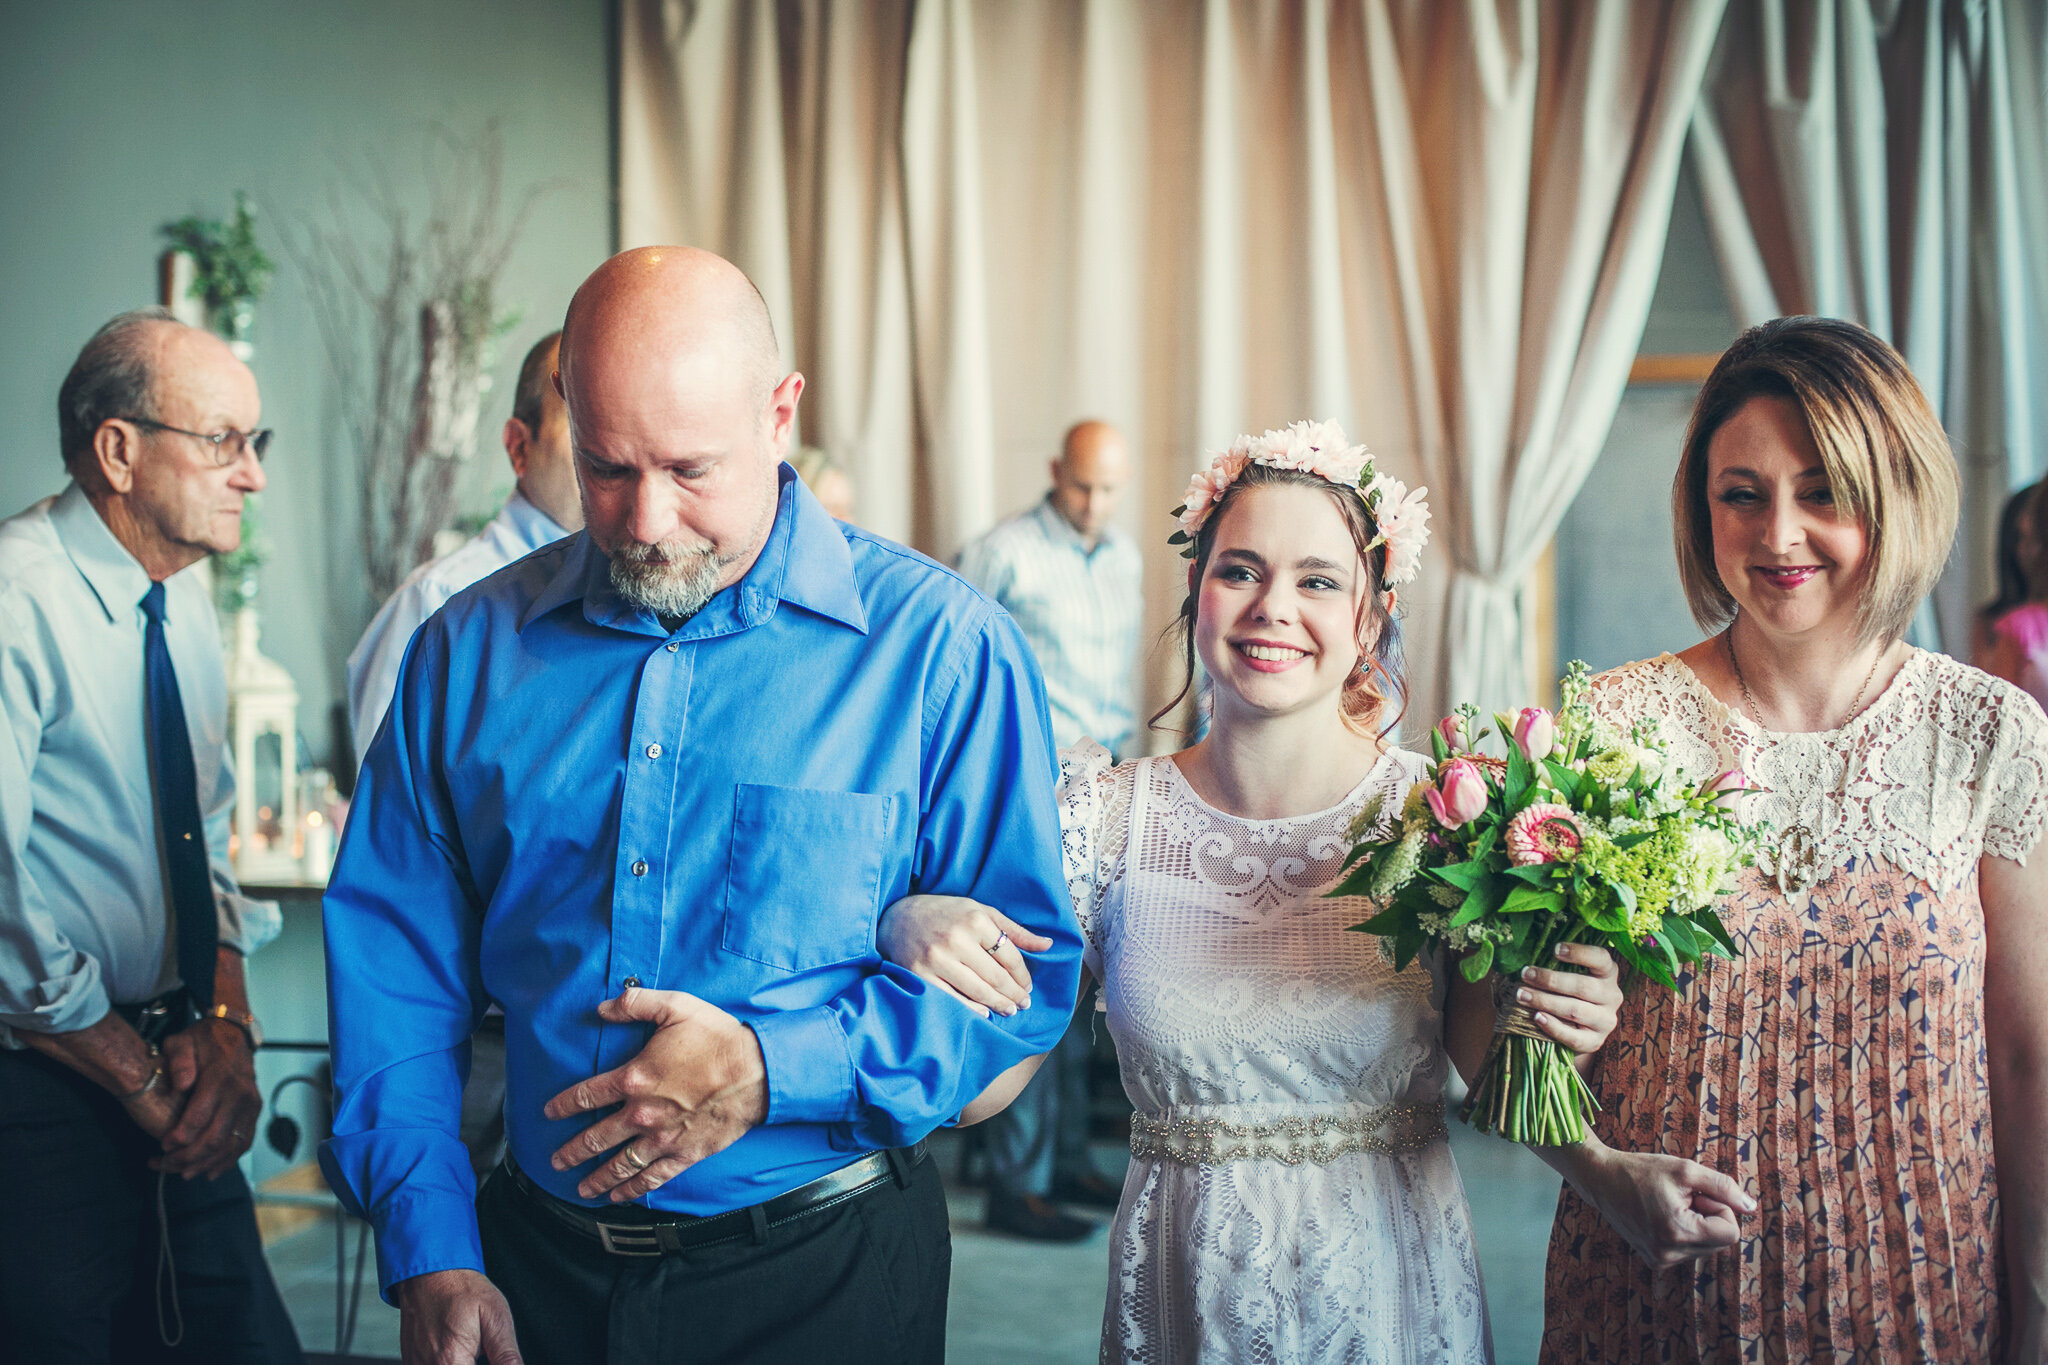 Little lovebird, Sophie, is covered in flowers from head to toe as she is escorted down the aisle by both her mother and father!